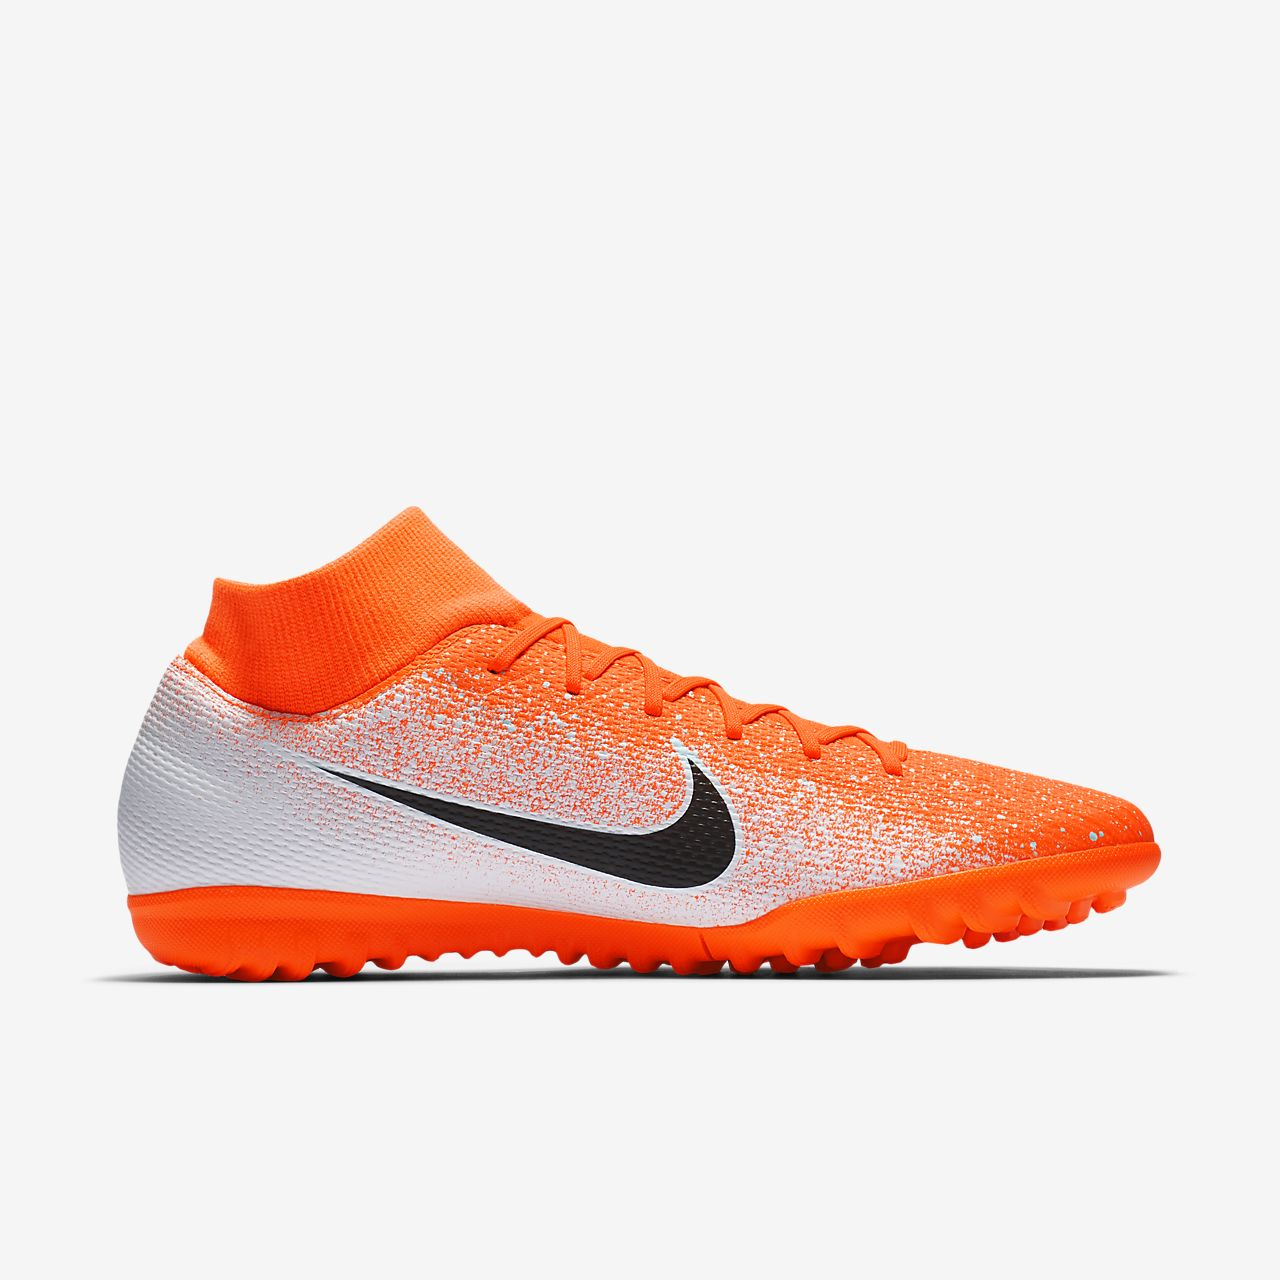 5deb5011eda74 ... Chaussure de football à crampons pour surface synthétique Nike  SuperflyX 6 Academy TF